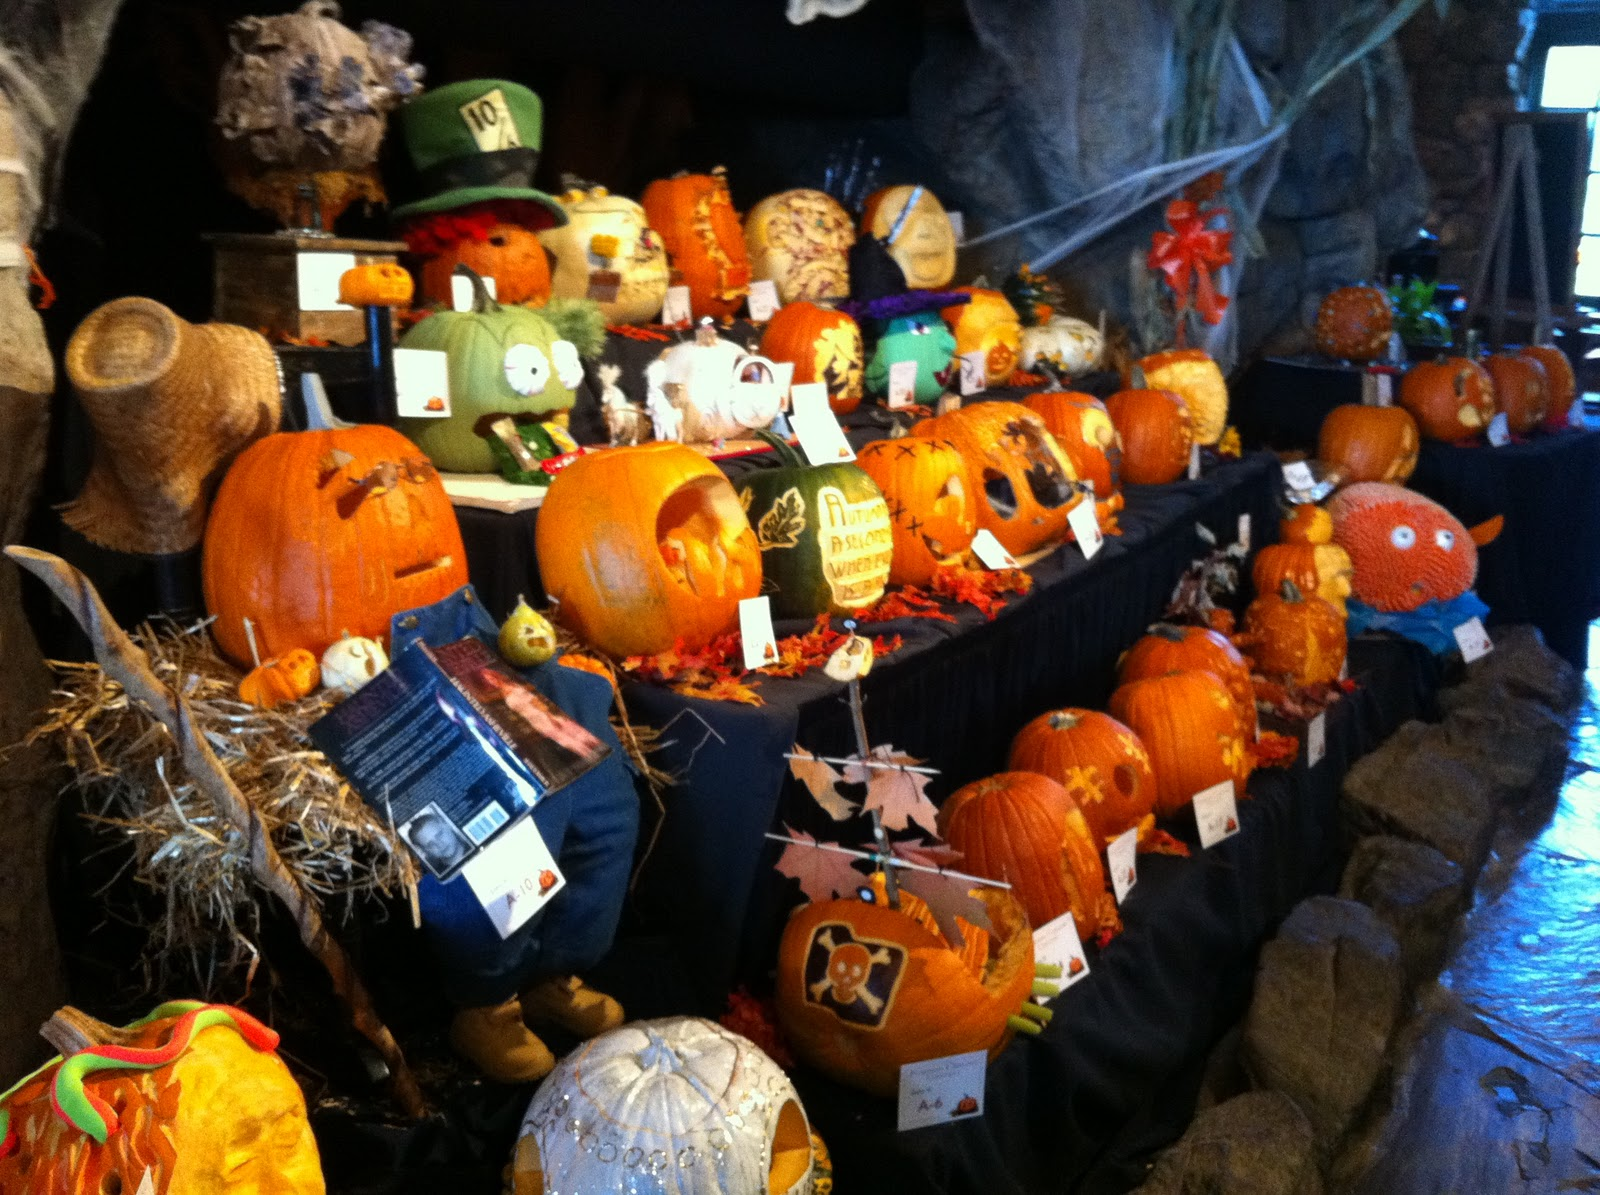 The asheville foodie pumpkin carving contest at grove